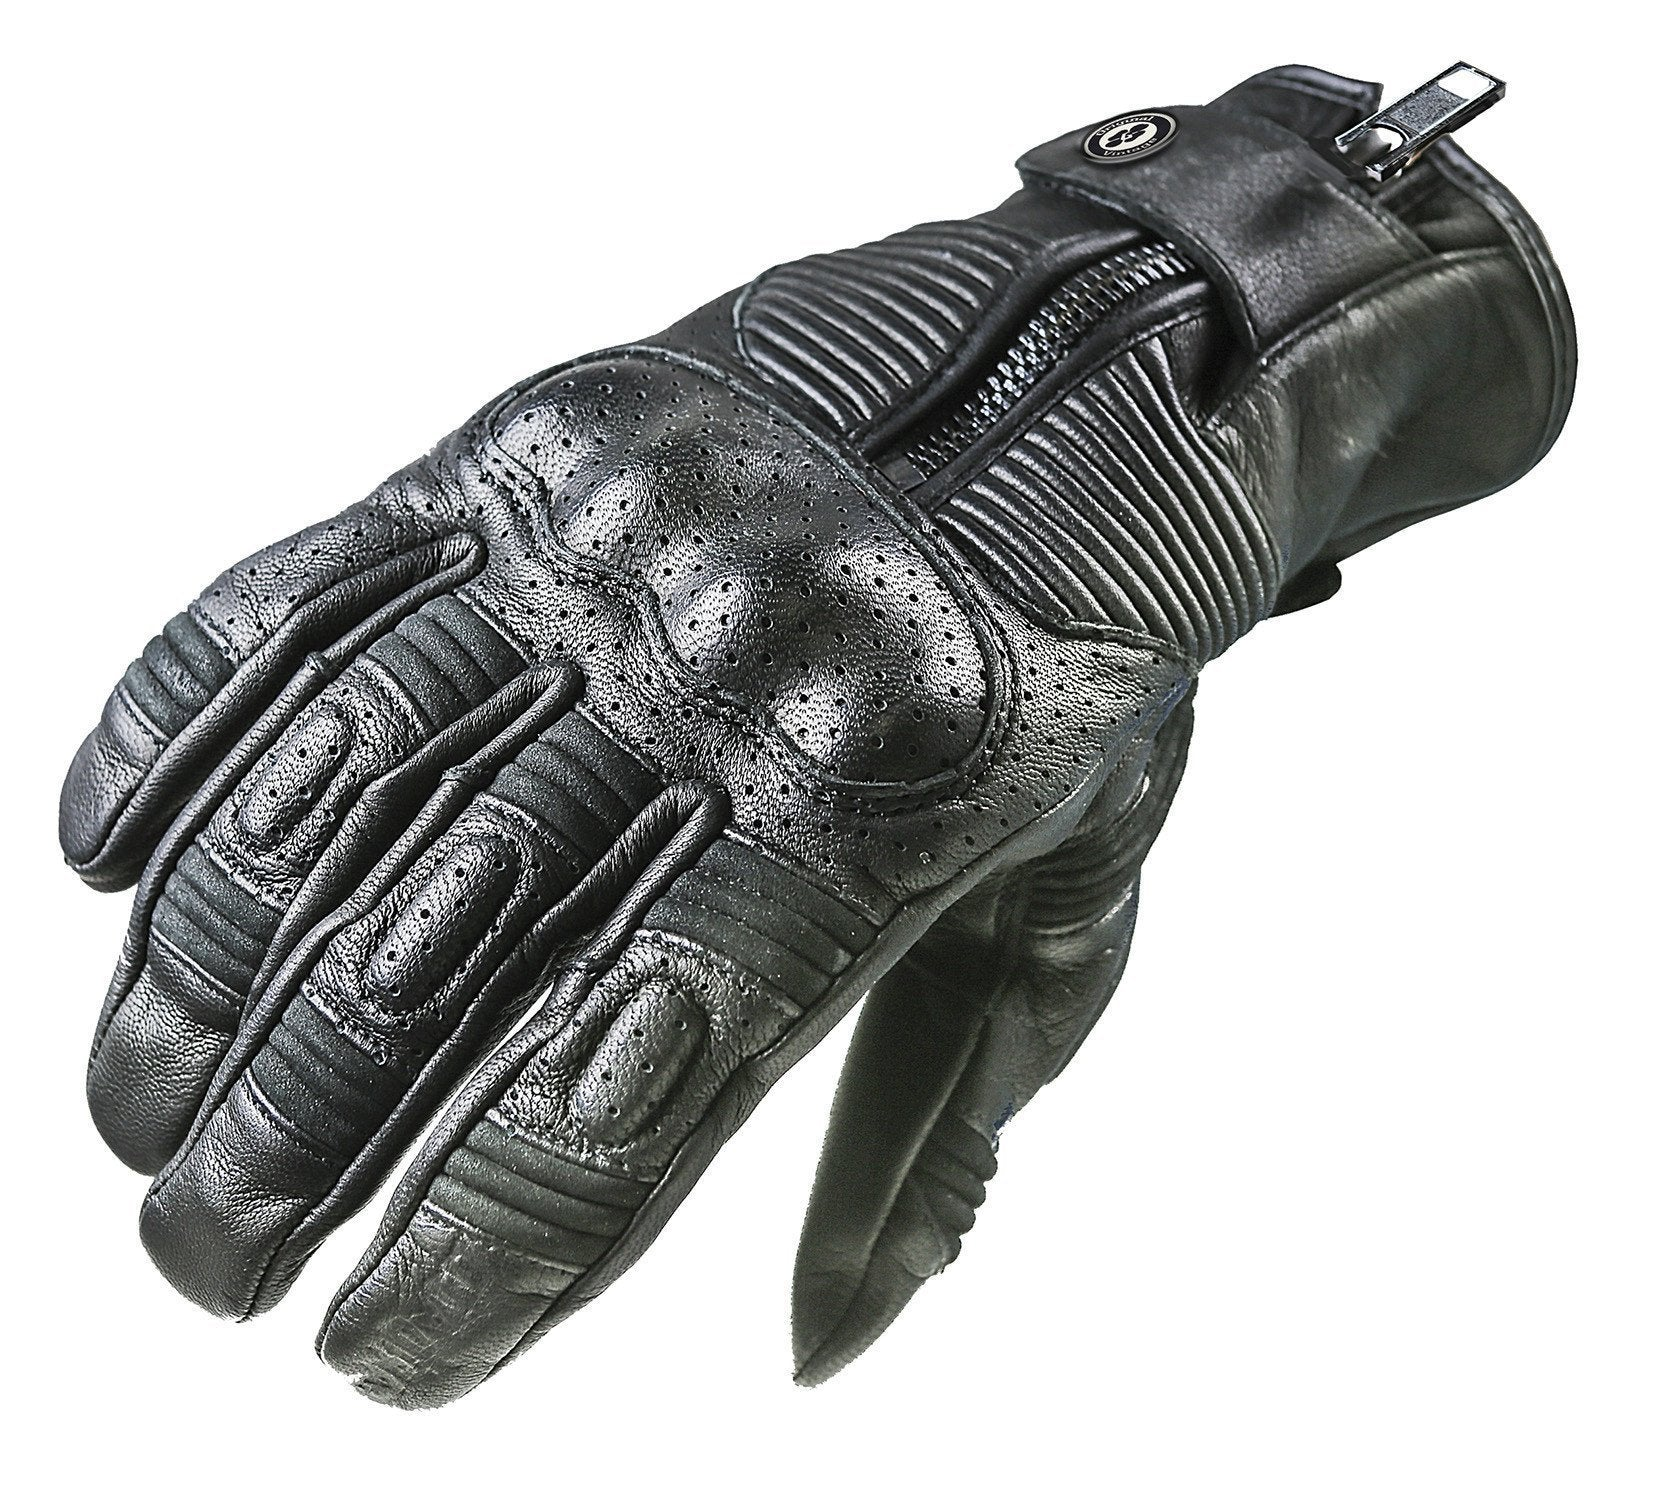 Garibaldi - Garibaldi Smoke Vintage Cafe Racer Style Motorcycle Gloves - Gloves - Salt Flats Clothing